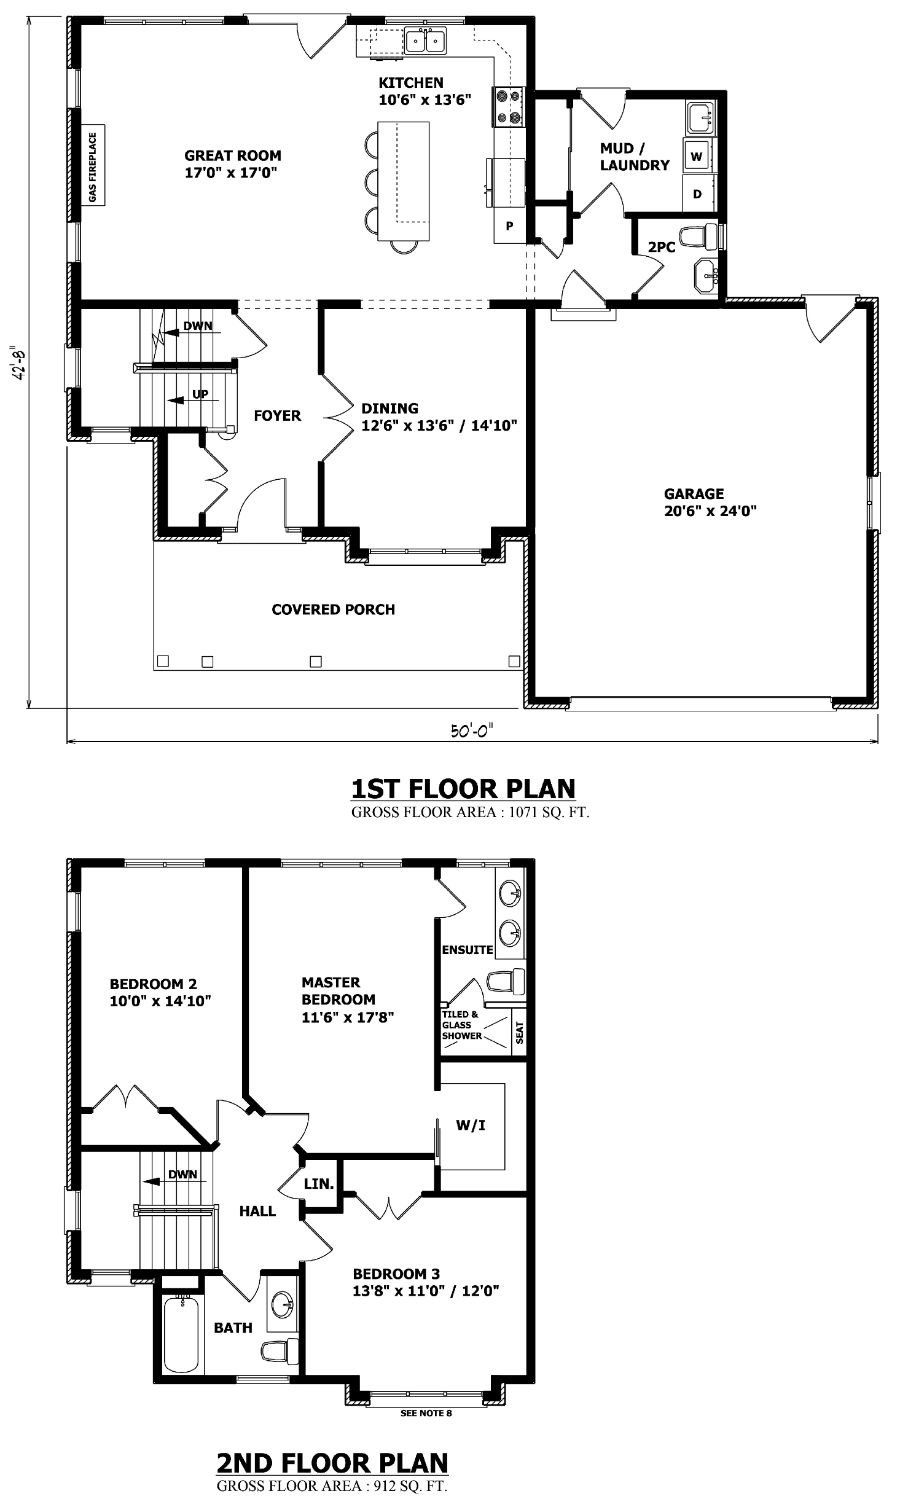 Needs Sizing Down For Us Two But Other Rooms Can Be Turned Into An Office Or A Library Two Storey House Plans House Floor Plans Two Story House Plans